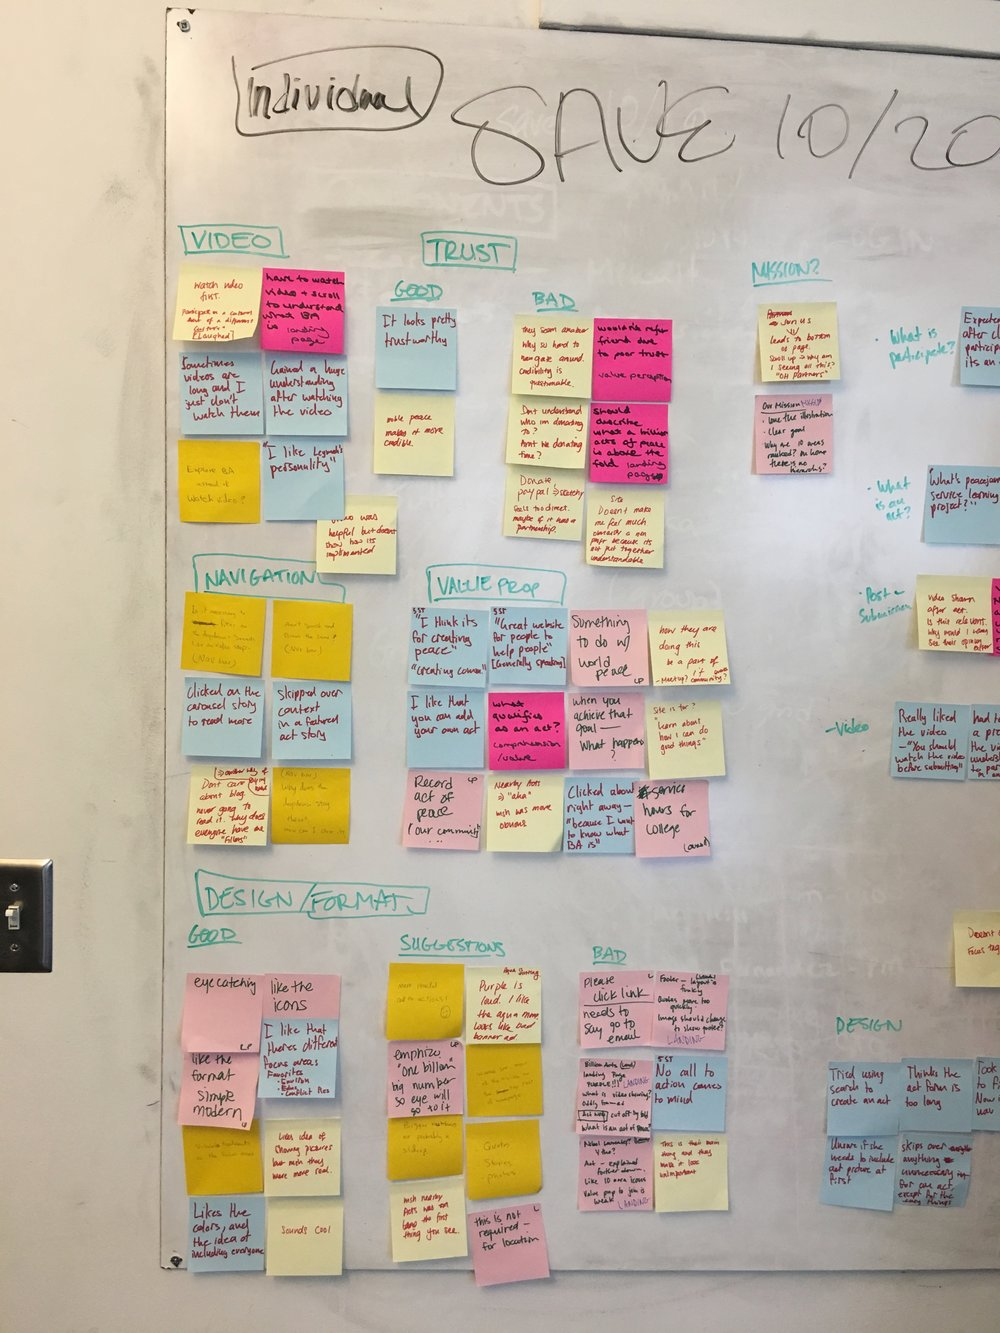 Affinity mapping with testing results